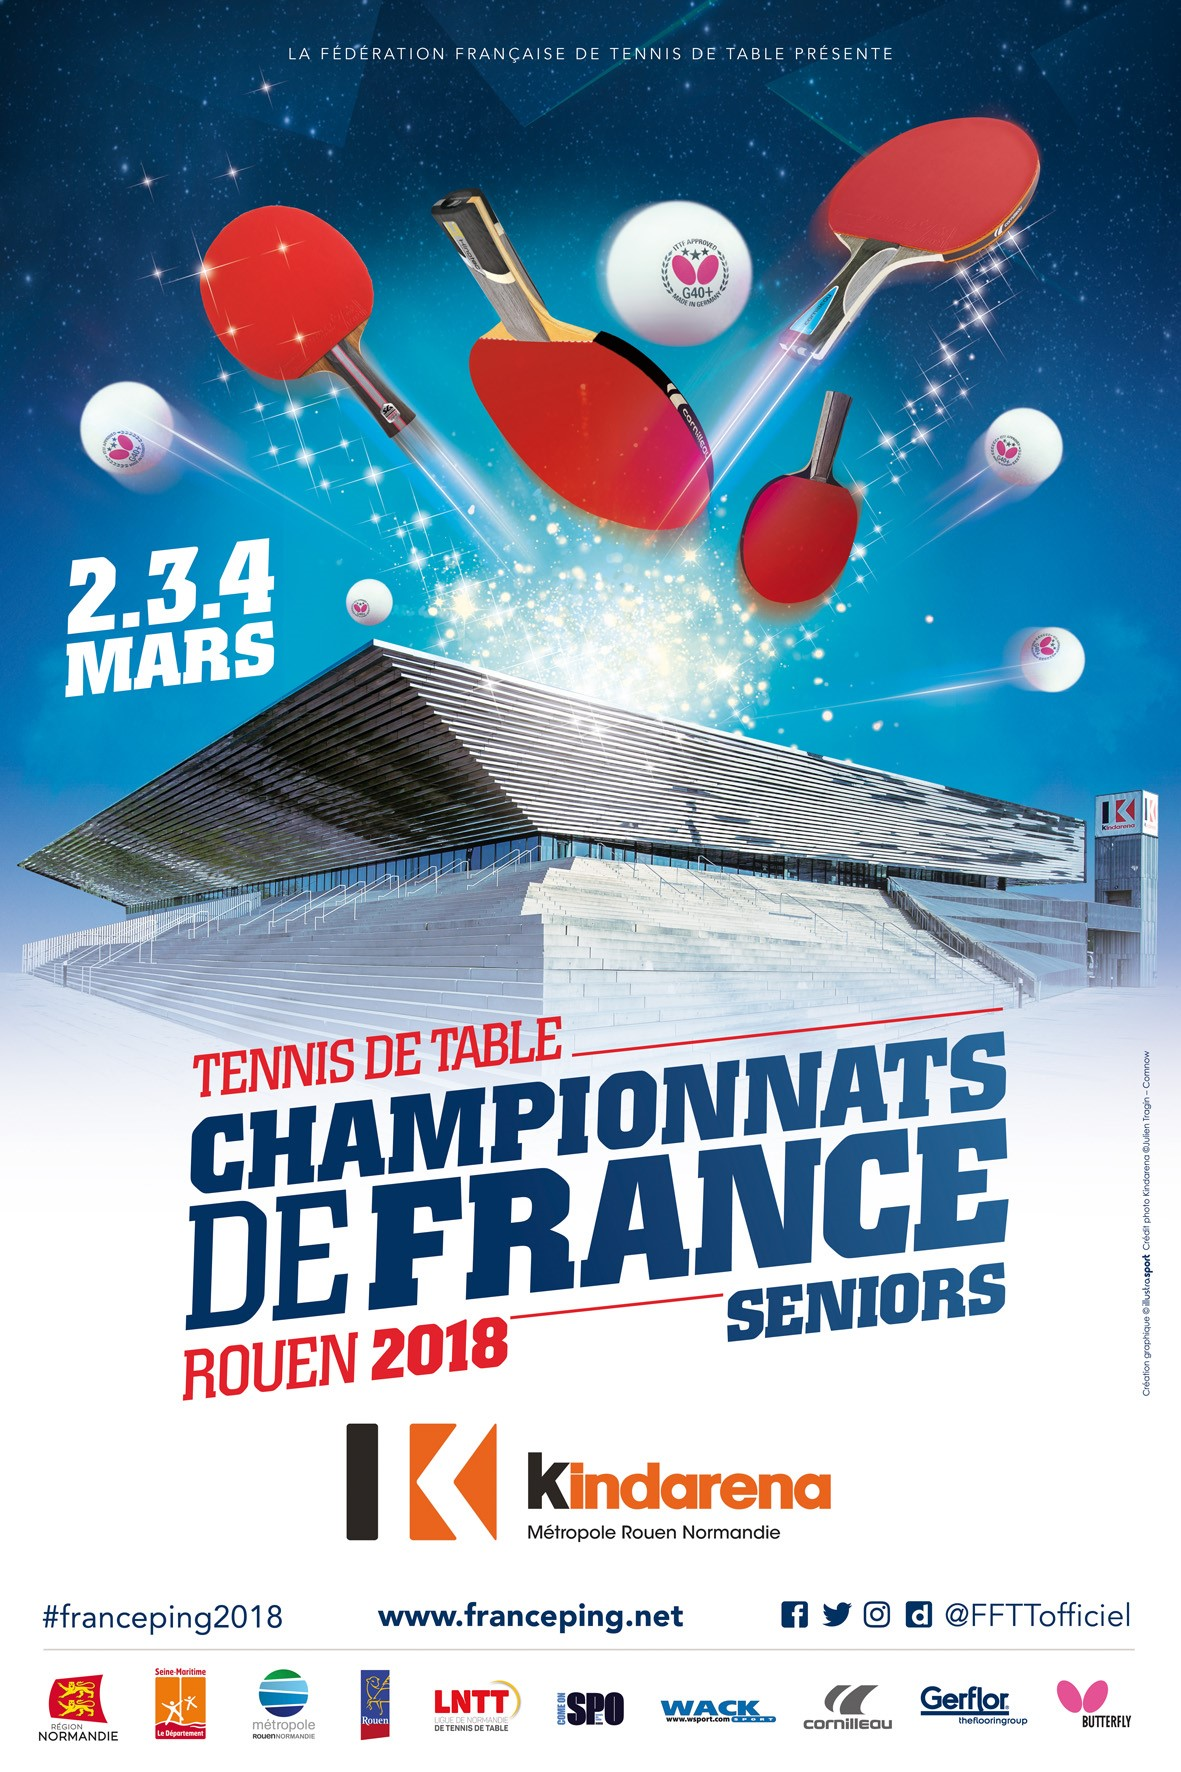 R sultats des championnats de france 2018 de tennis de table - Championnat de france de tennis de table ...